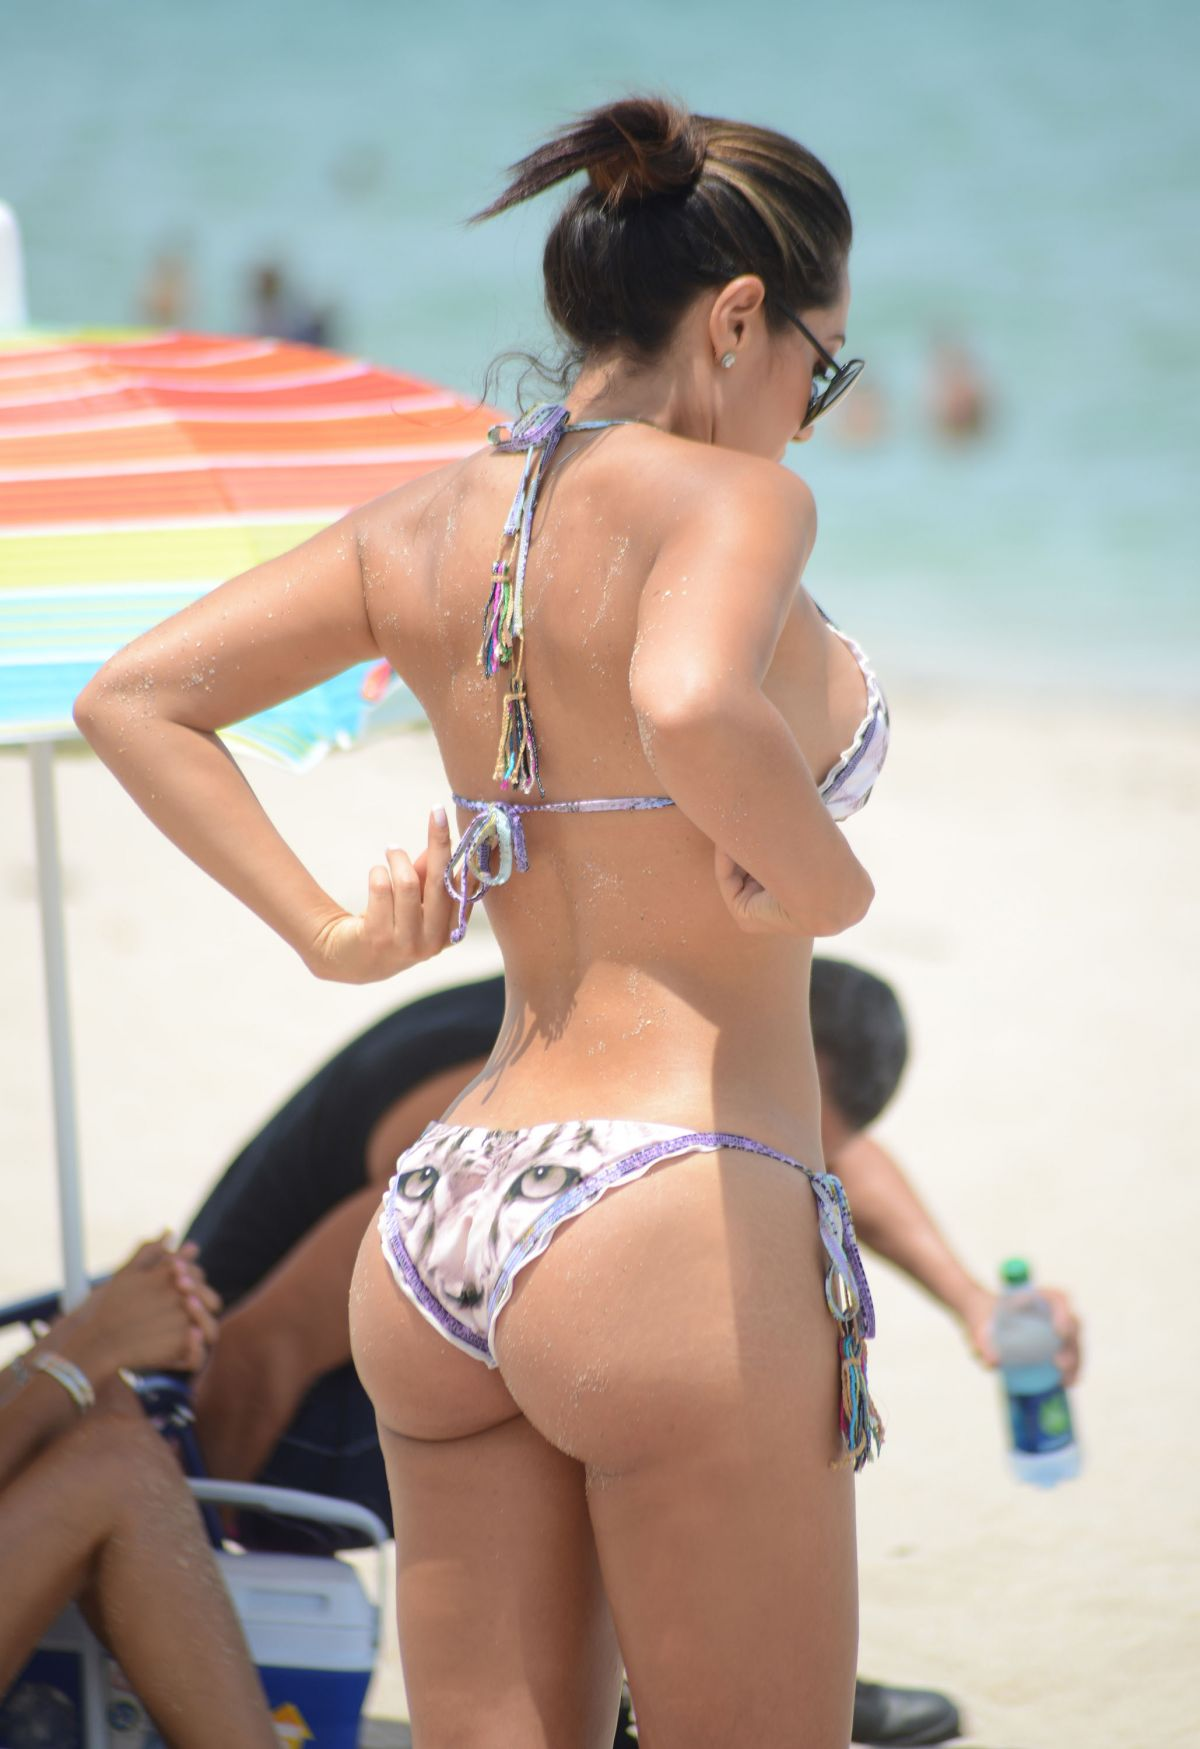 andrea calle in bkini at a bea